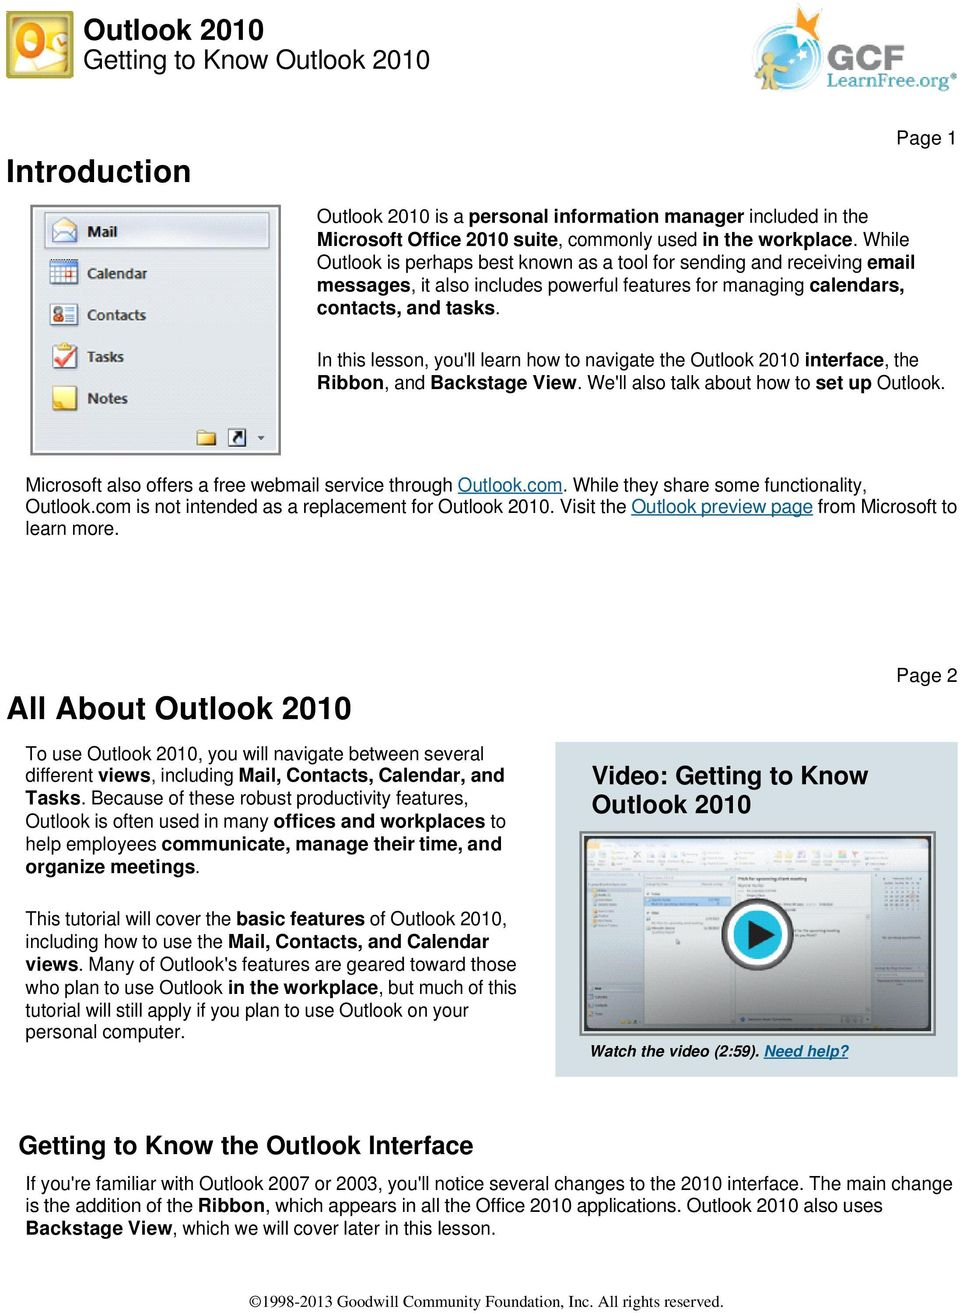 Page 1 In this lesson, you'll learn how to navigate the Outlook 2010 interface, the Ribbon, and Backstage View. We'll also talk about how to set up Outlook.